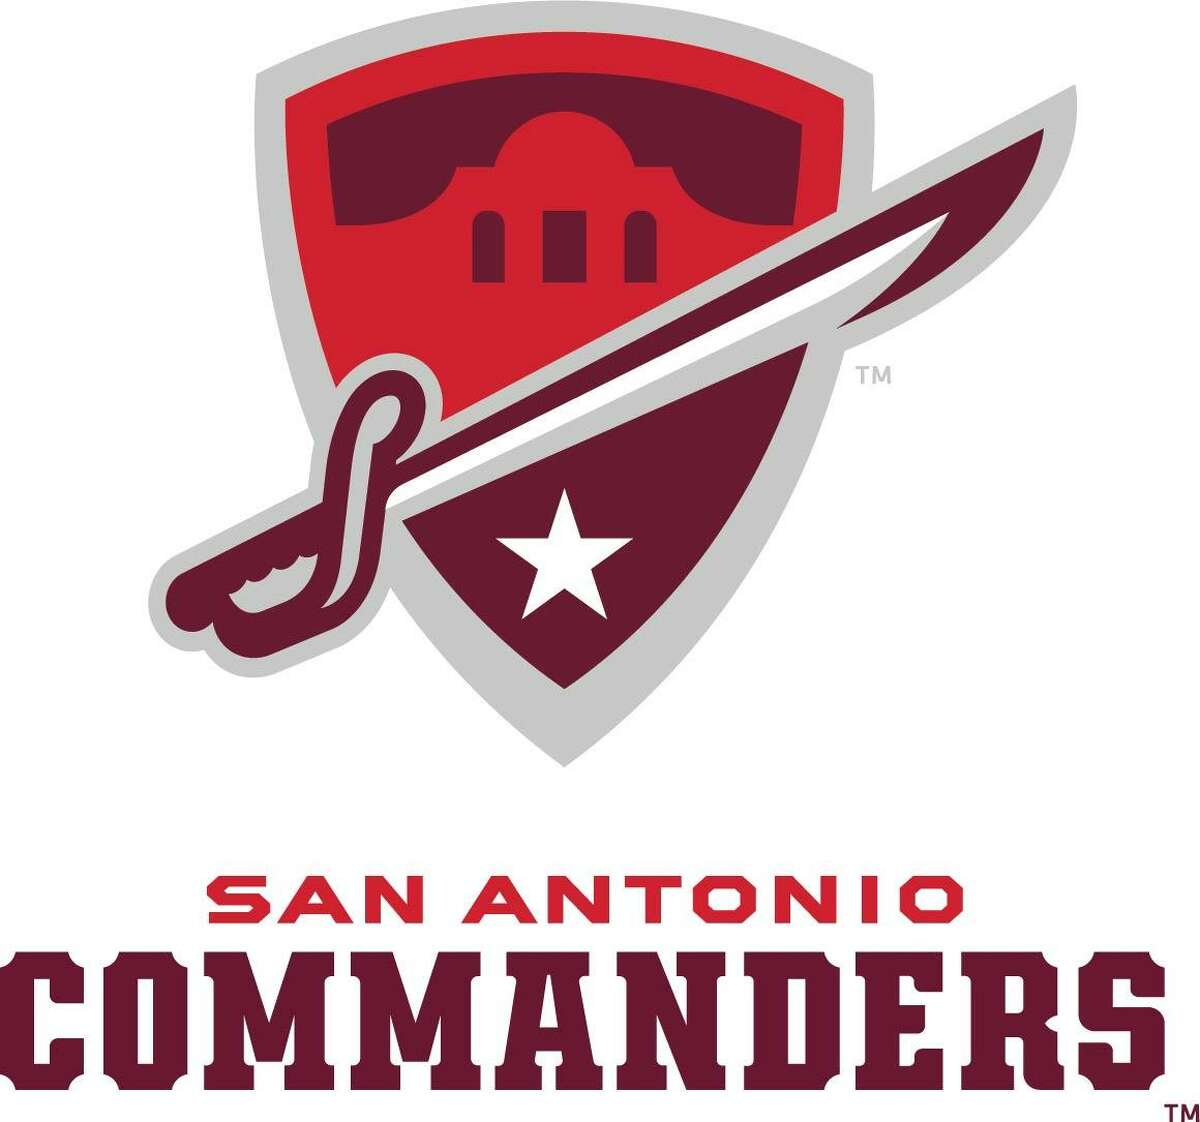 The Alliance of American Football announce official logo for the San Antonio team. The team will be called the Commanders, a nod to San Antonio's designation as Military City, USA. The team's logo, which represents a military patch and includes a depiction of the Alamo, a military sword and a star, is accentuated in maroon, red and silver, the team's colors.